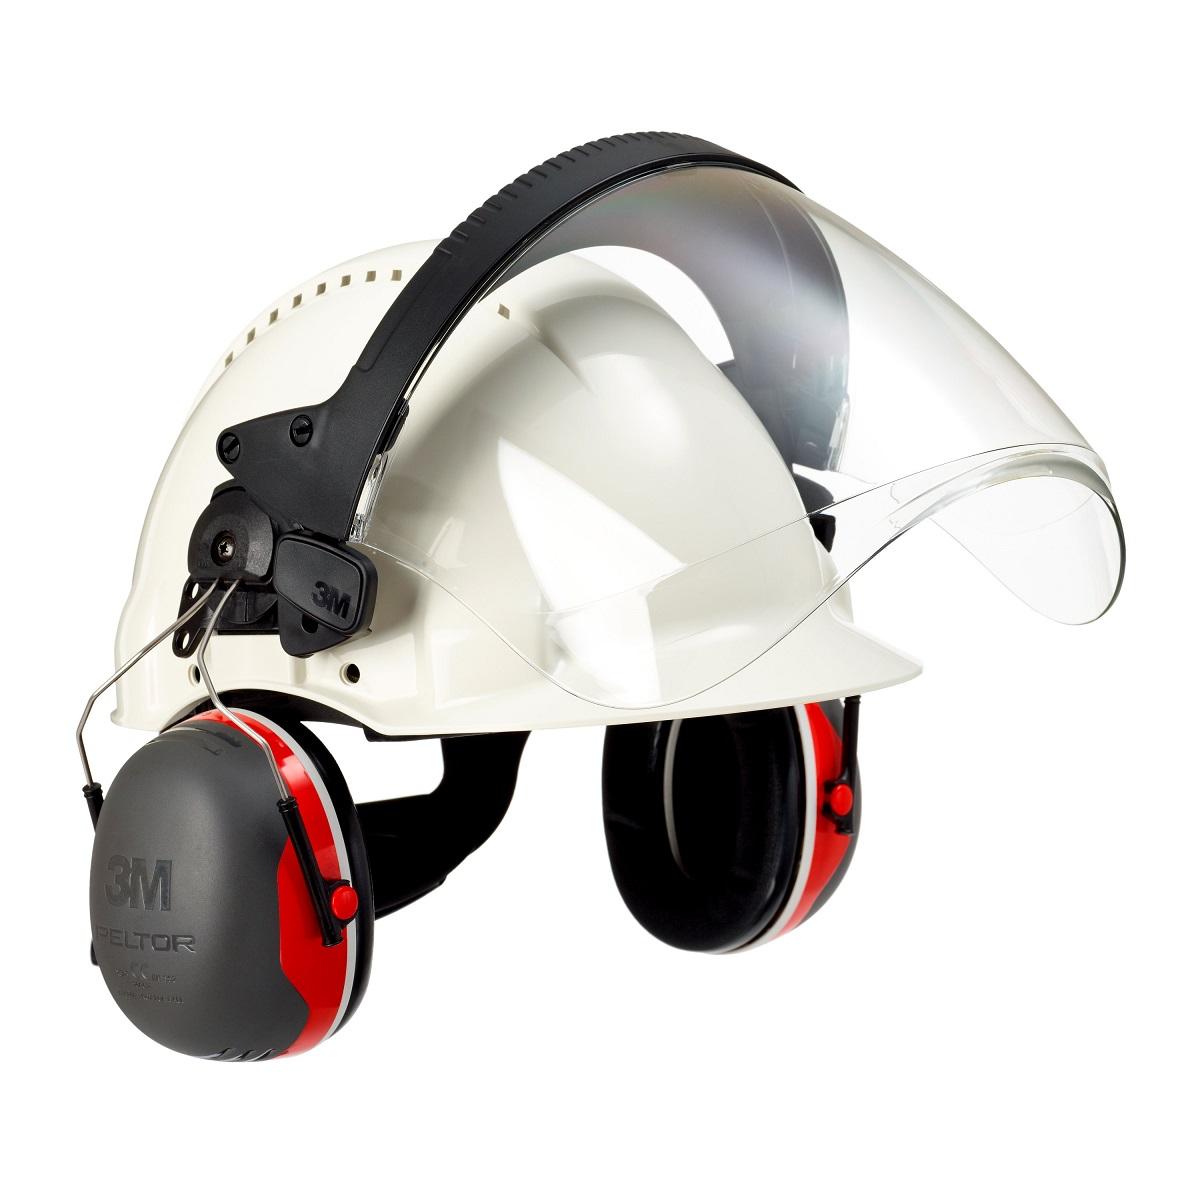 safety helmet g3000nwhite with faceshield 5f 1 ear muffs x3p3e